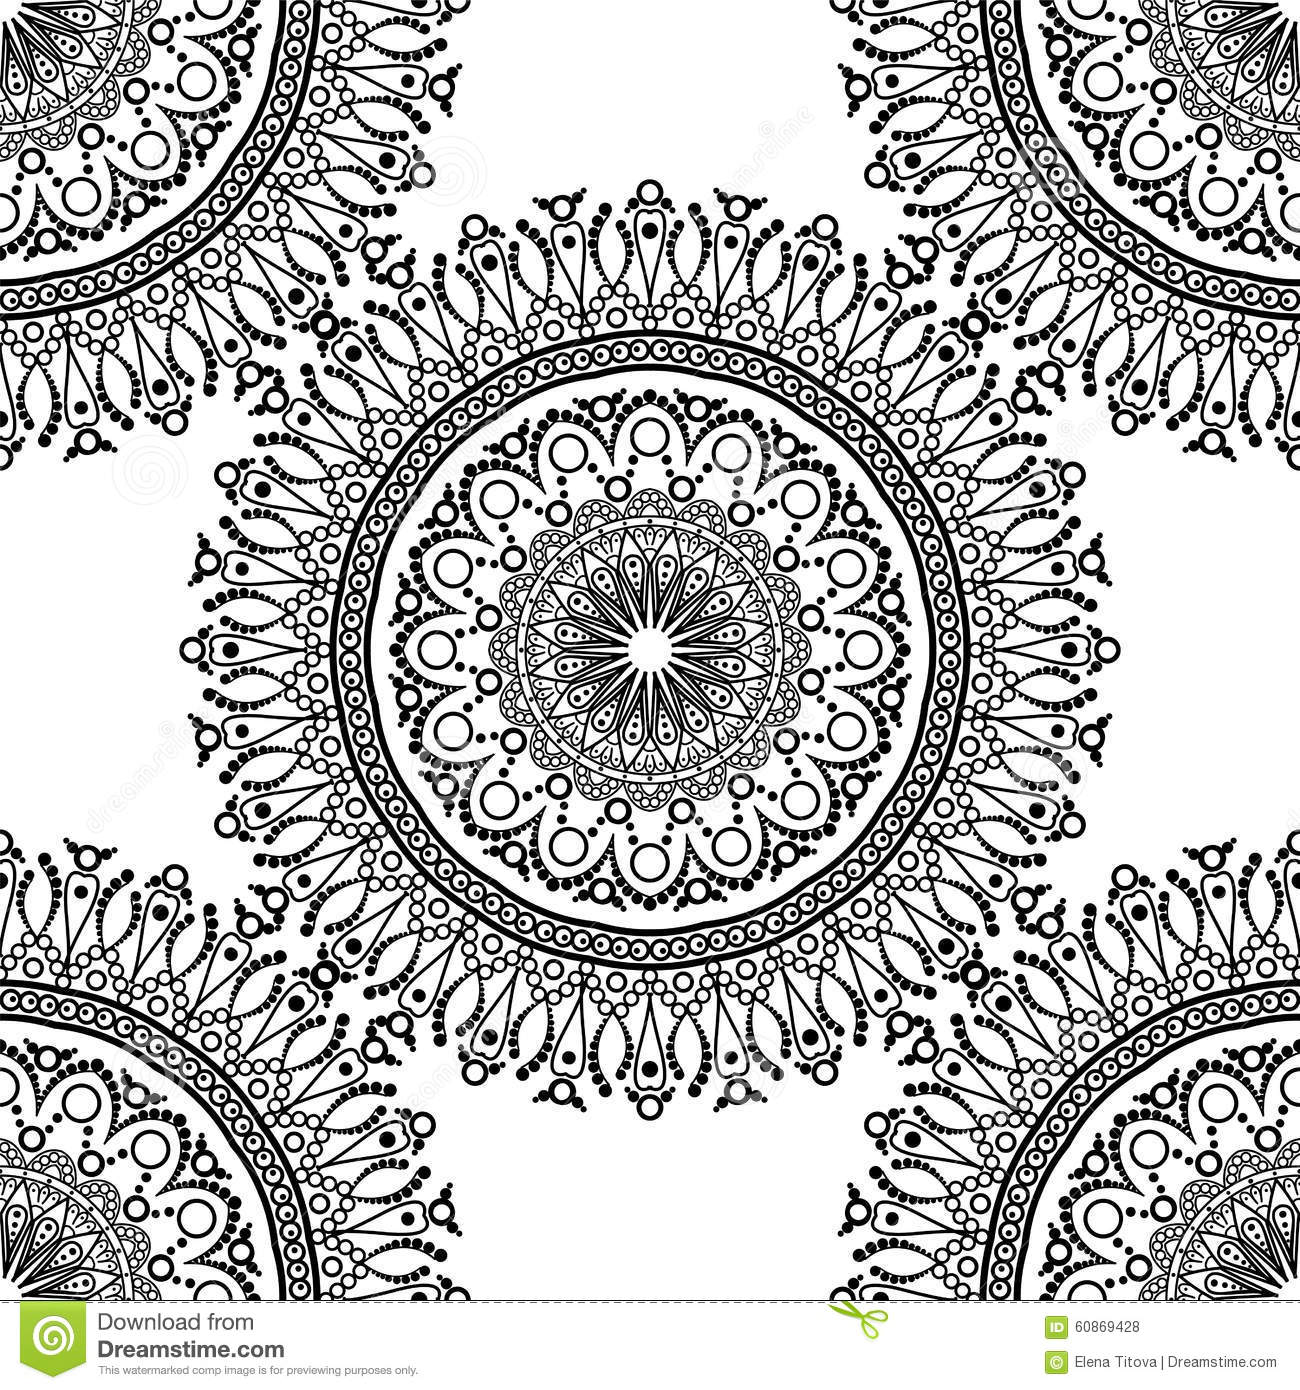 nahtloses muster mandala mit dekorativer verzierung stock abbildung illustration von. Black Bedroom Furniture Sets. Home Design Ideas